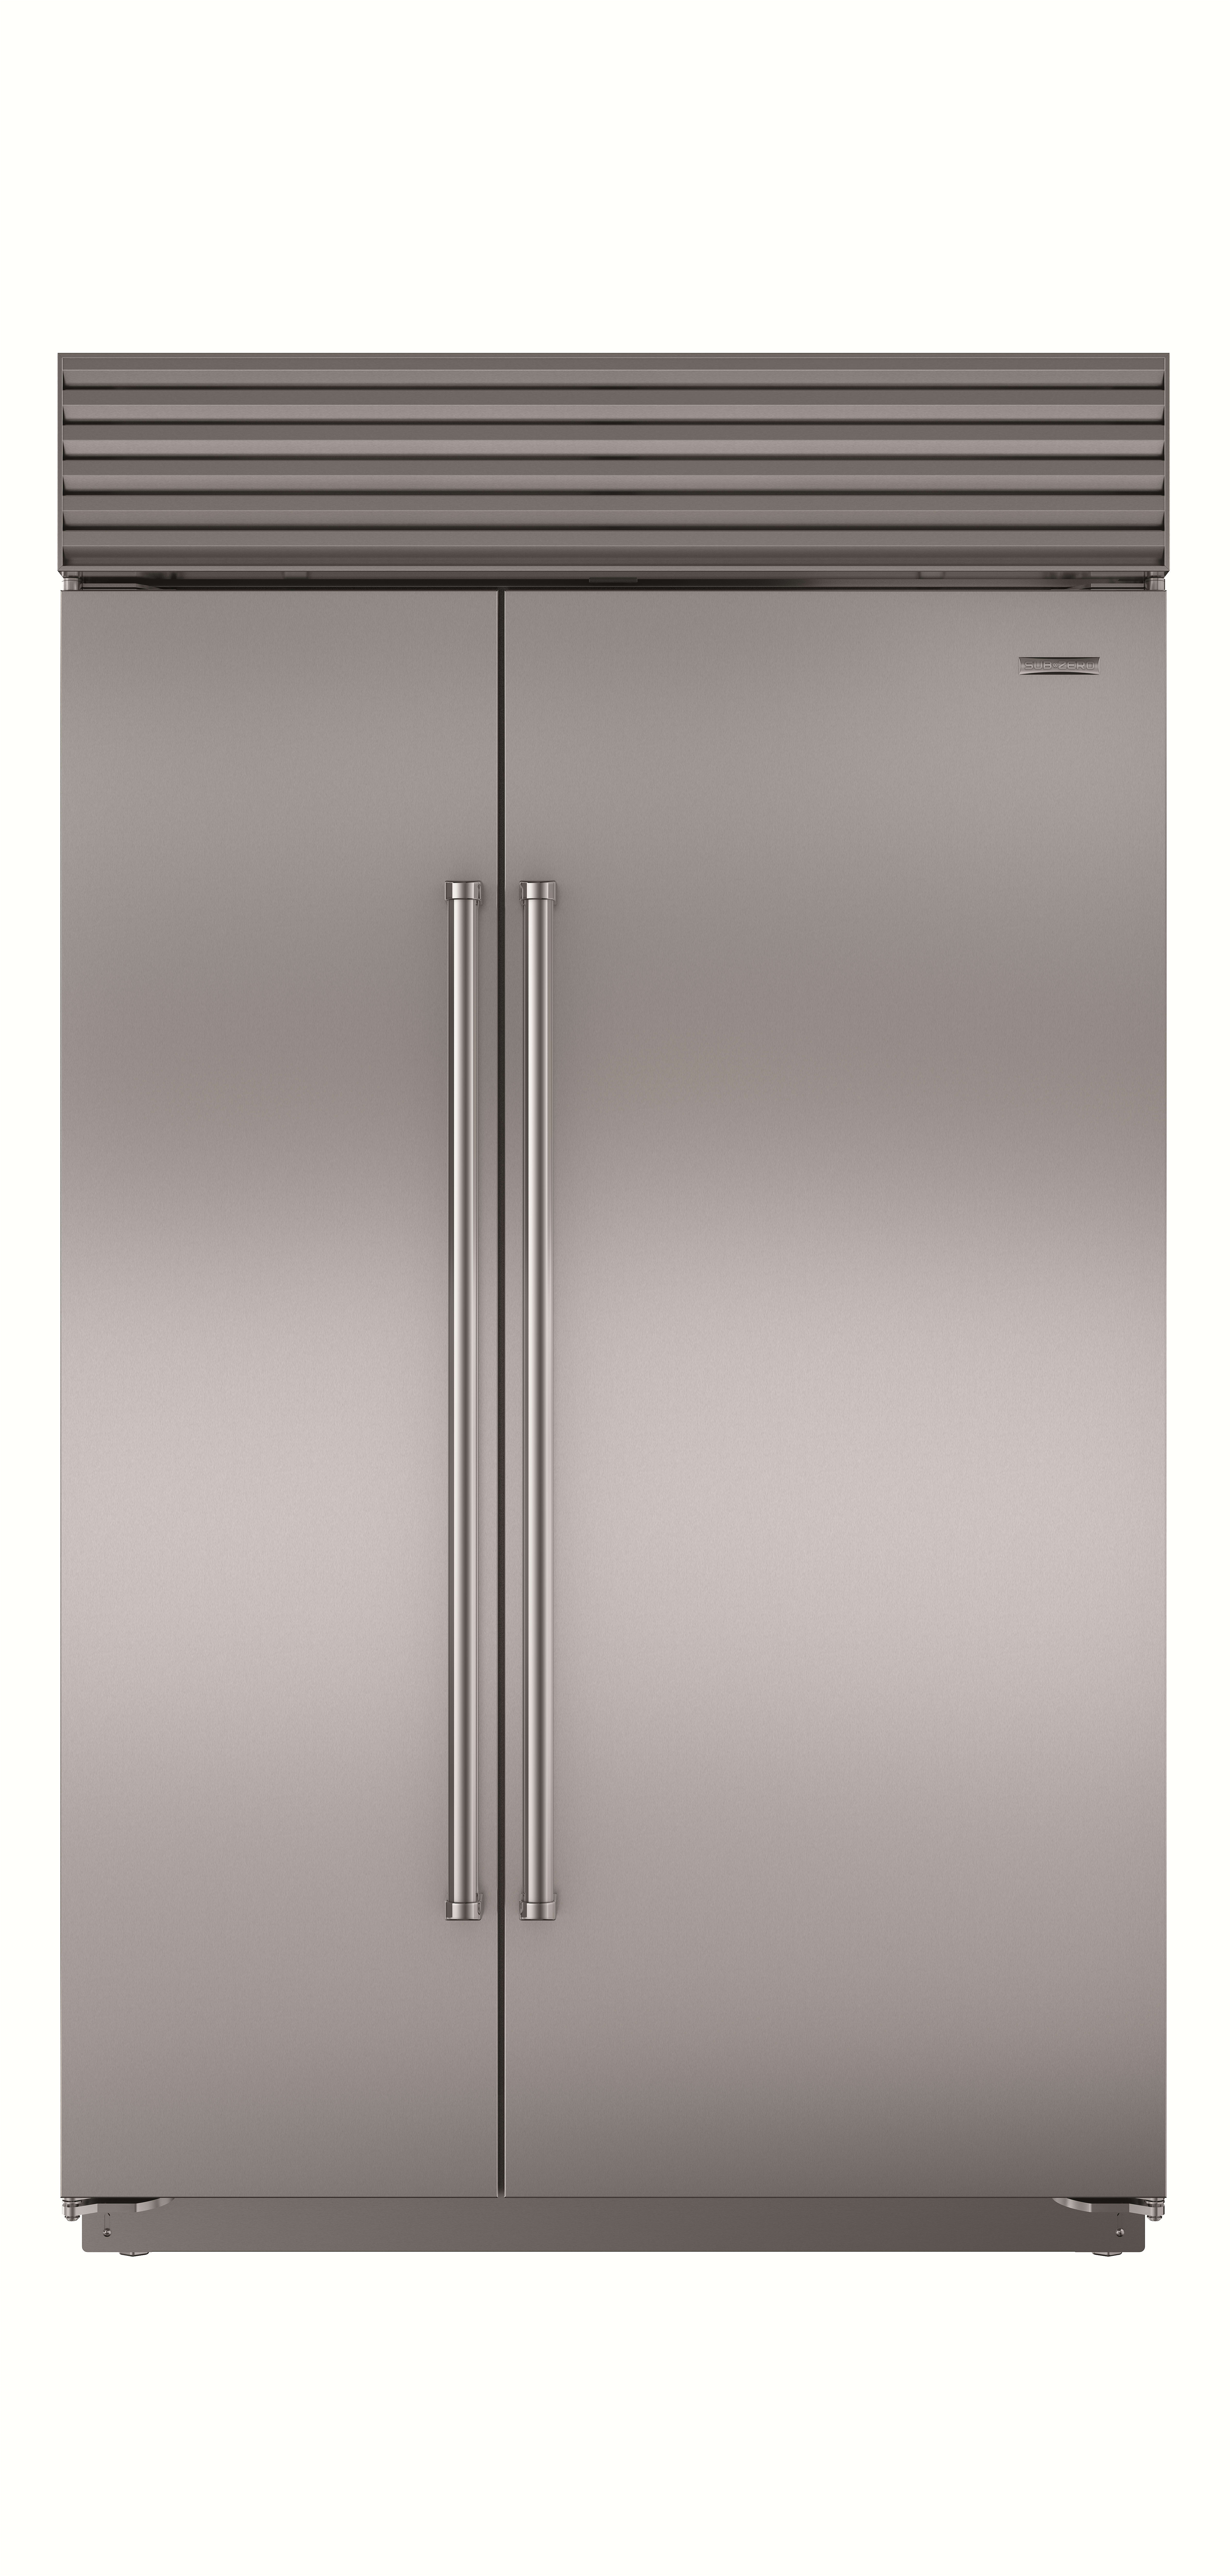 sub zero bi48ssph 48 inch built in side by side refrigerator with 28 9 cu ft capacity dual refrigeration microprocessor control air purification